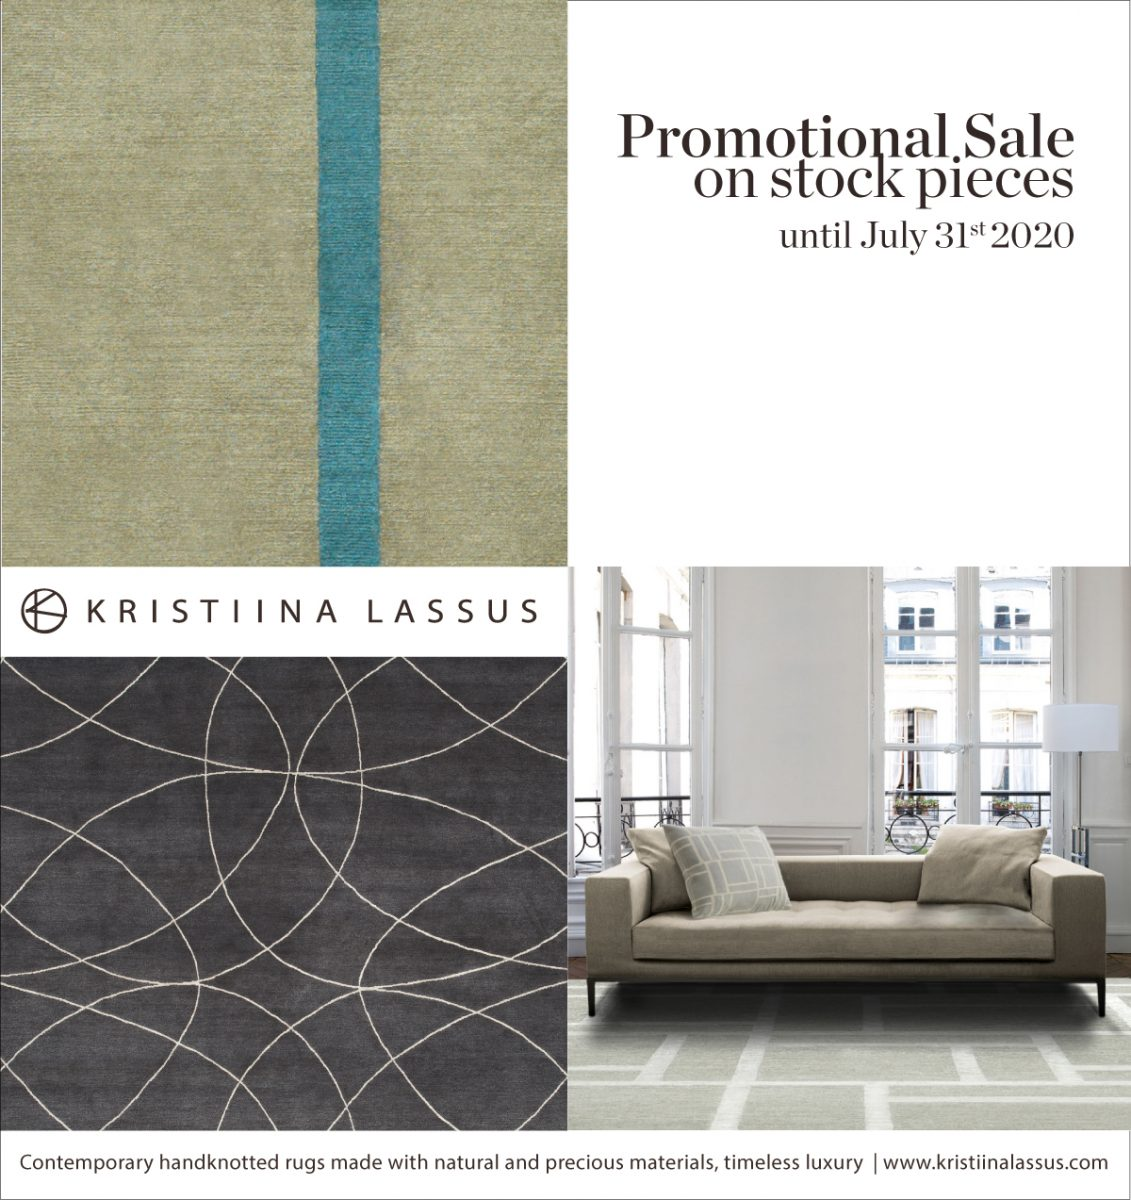 Promotion June-July-20 _Rugs Kristiina Lassus _100620lc